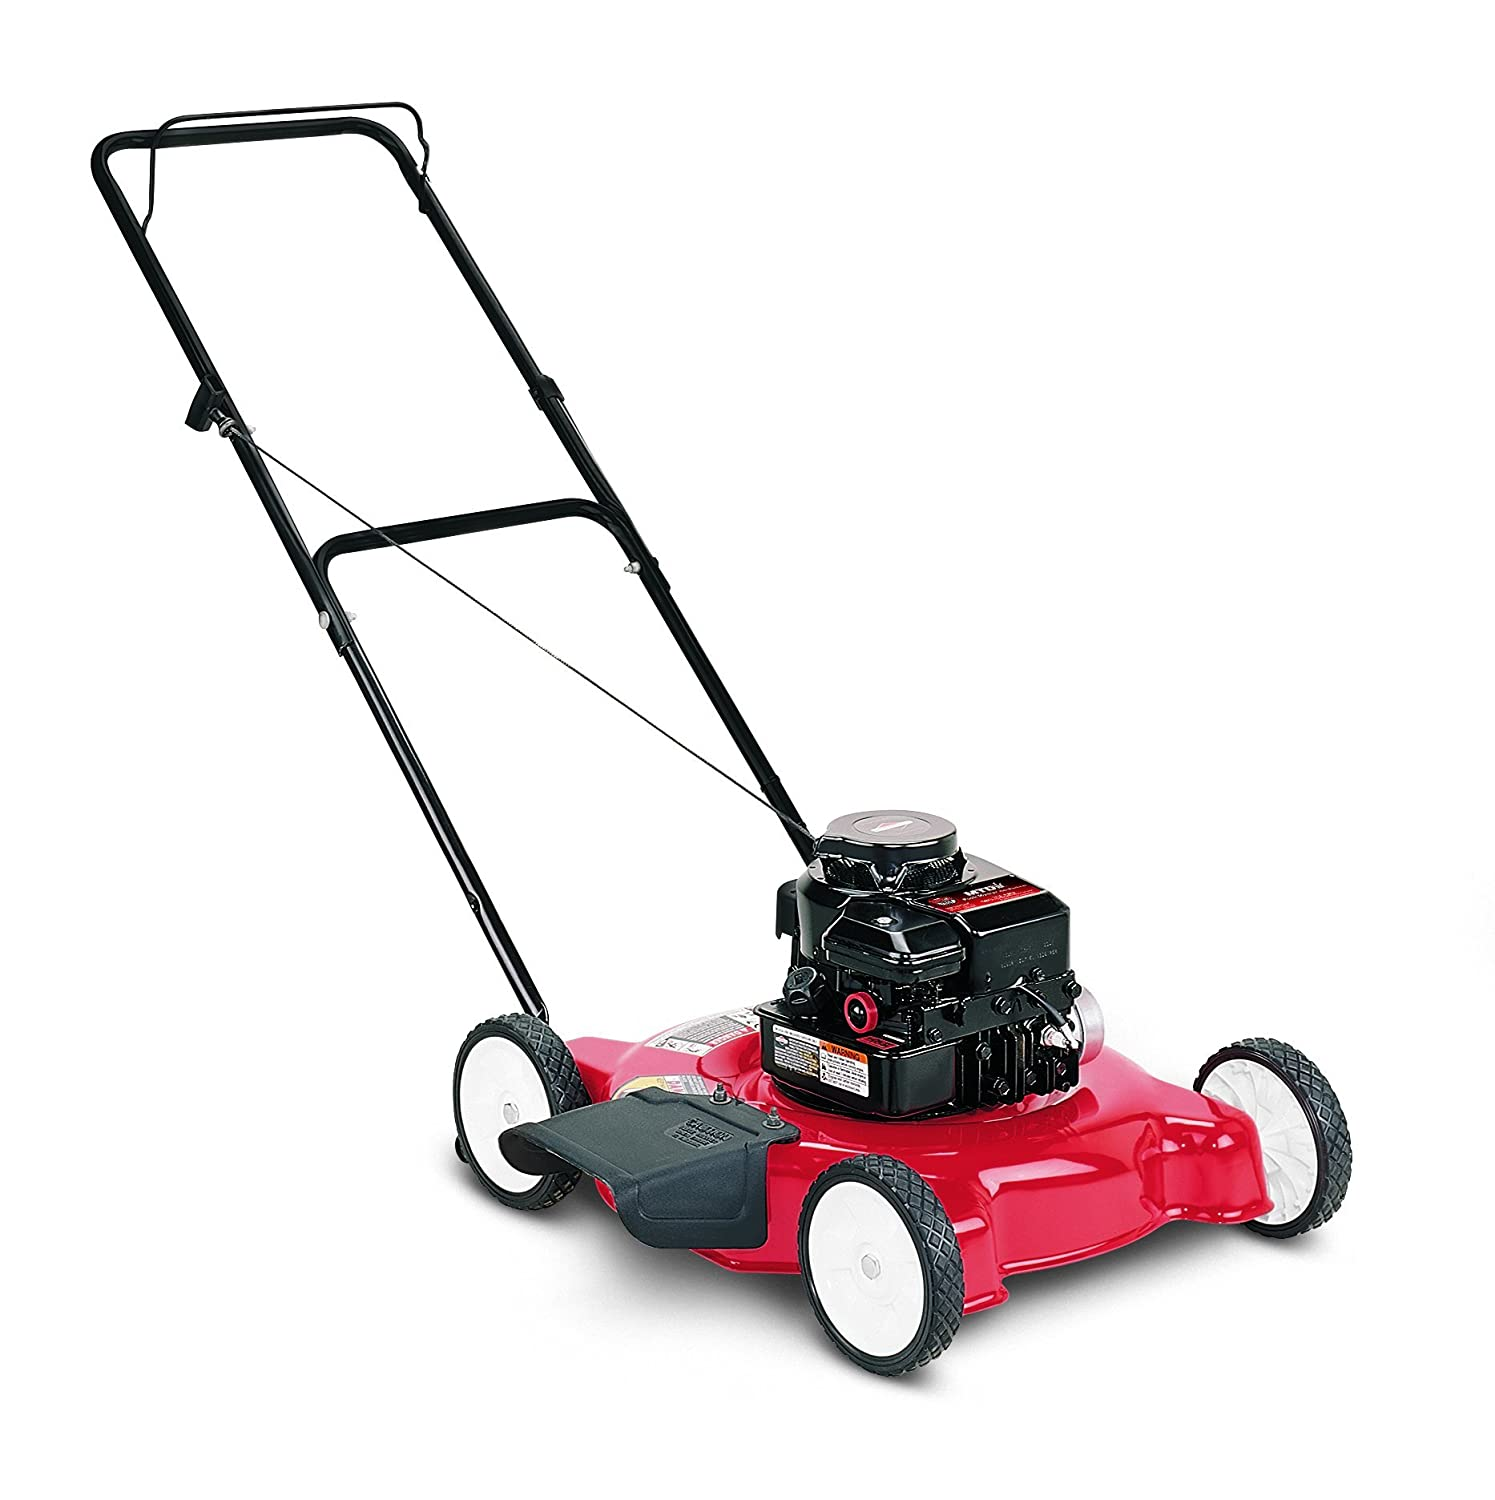 Amazon.com : Yard Machine 11A-020L700 148cc Briggs and Stratton Side  Discharge Gas Powered Push Lawn Mower, 20-Inch : Walk Behind Lawn Mowers :  Garden & ...